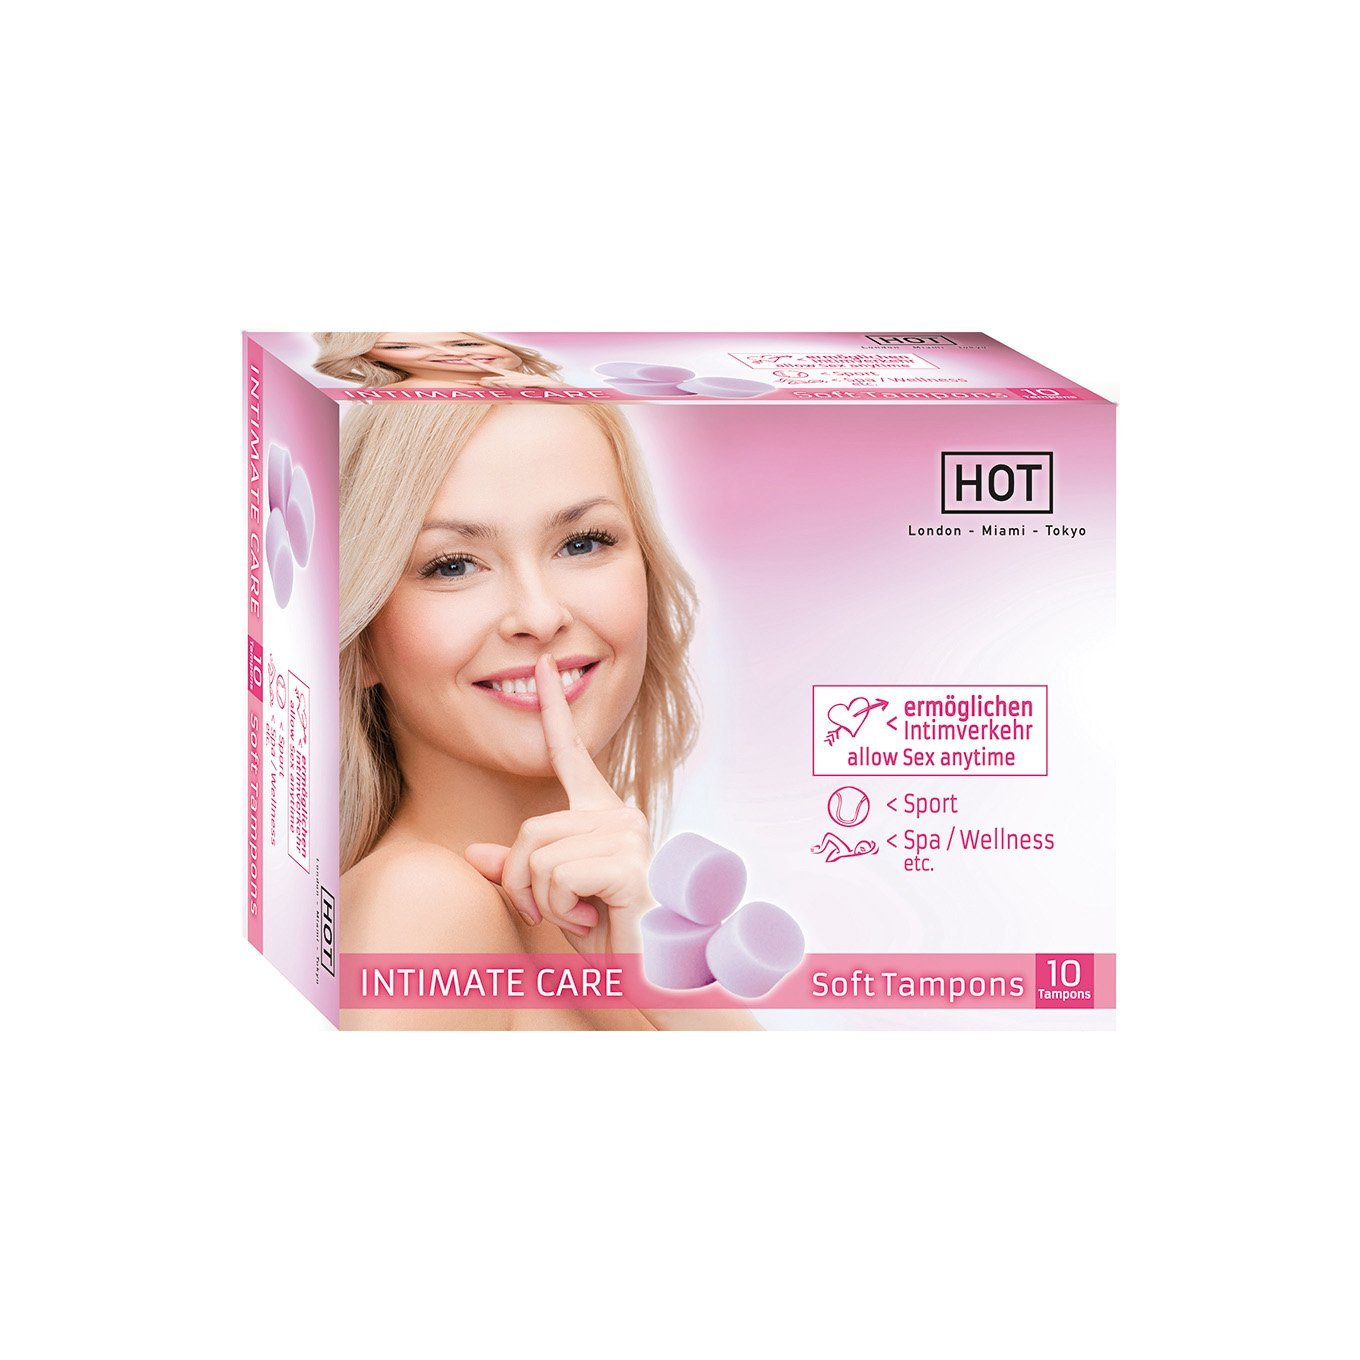 Hot - Intimate Care Soft Tampons (10 Pack) | CherryAffairs Singapore